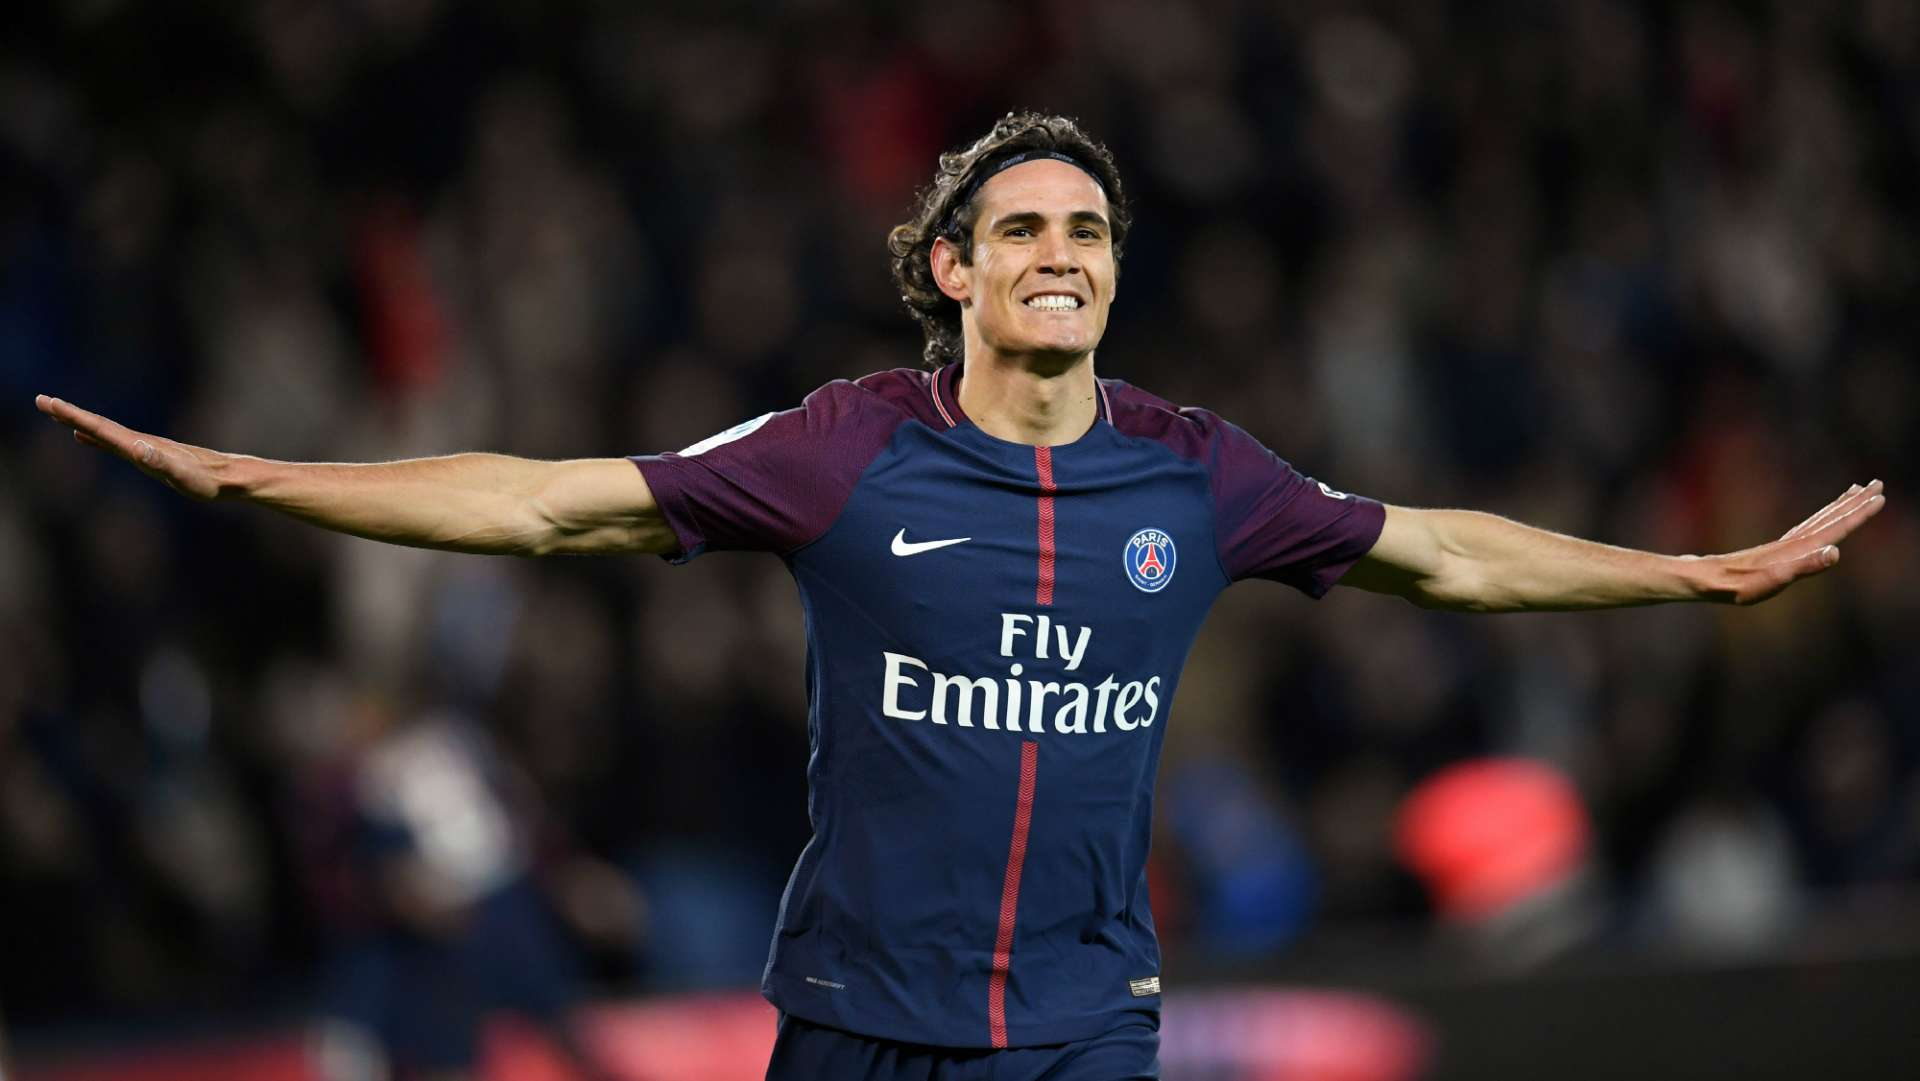 Edinson Cavani Paris Saint-Germain Dijon